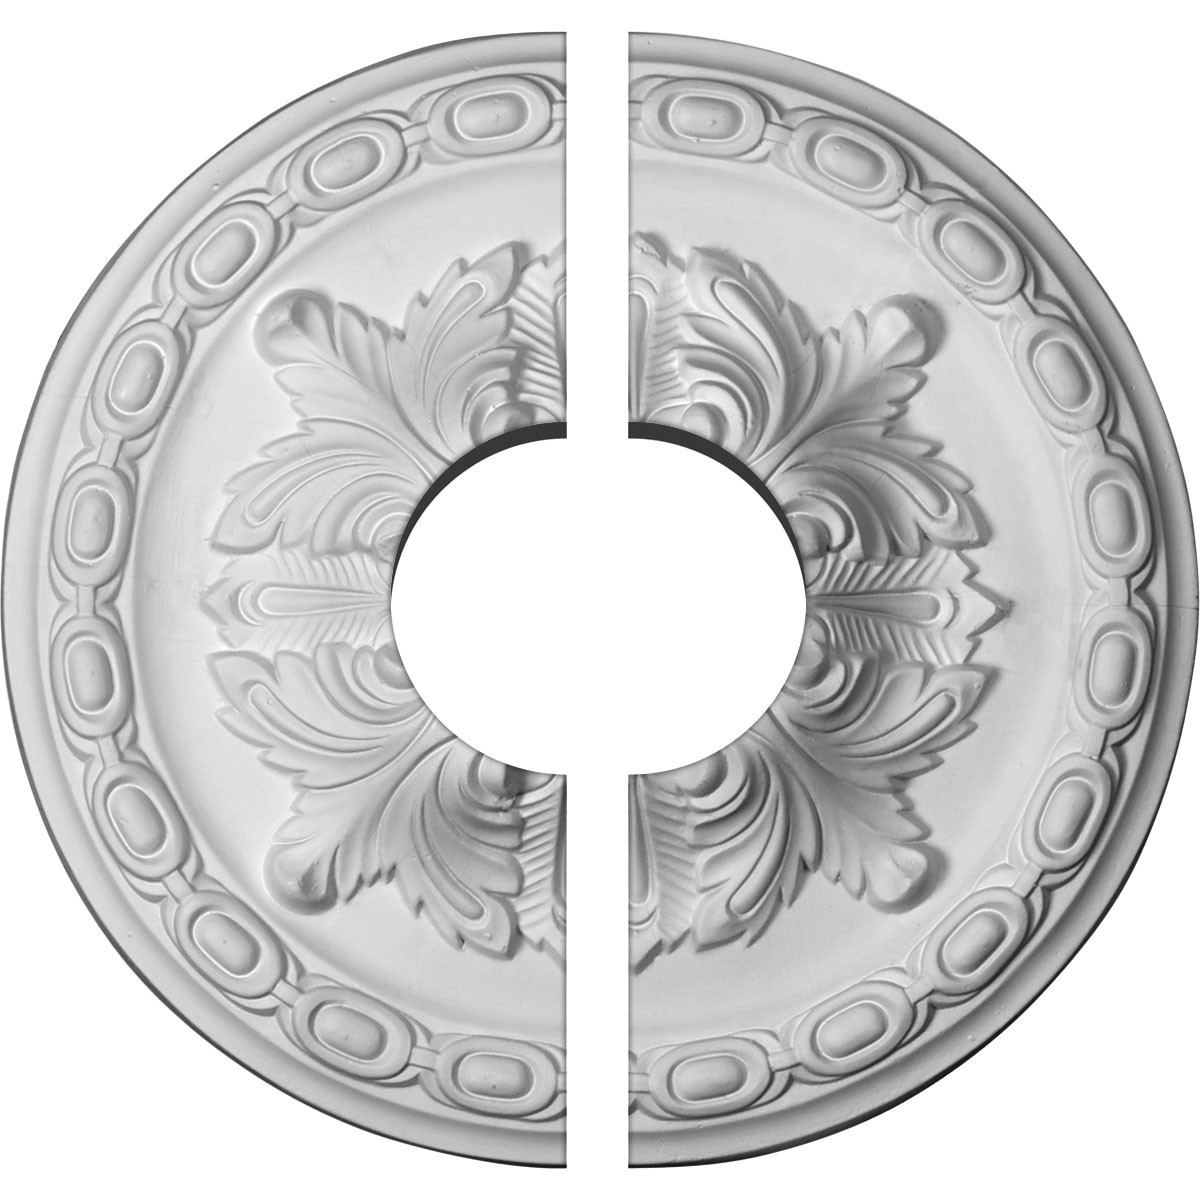 """EM-CM11AC2-03500 - 11 3/8""""OD x 3 1/2""""ID x 2""""P Acanthus Ceiling Medallion, Two Piece (Fits Canopies up to 3 1/2"""")"""